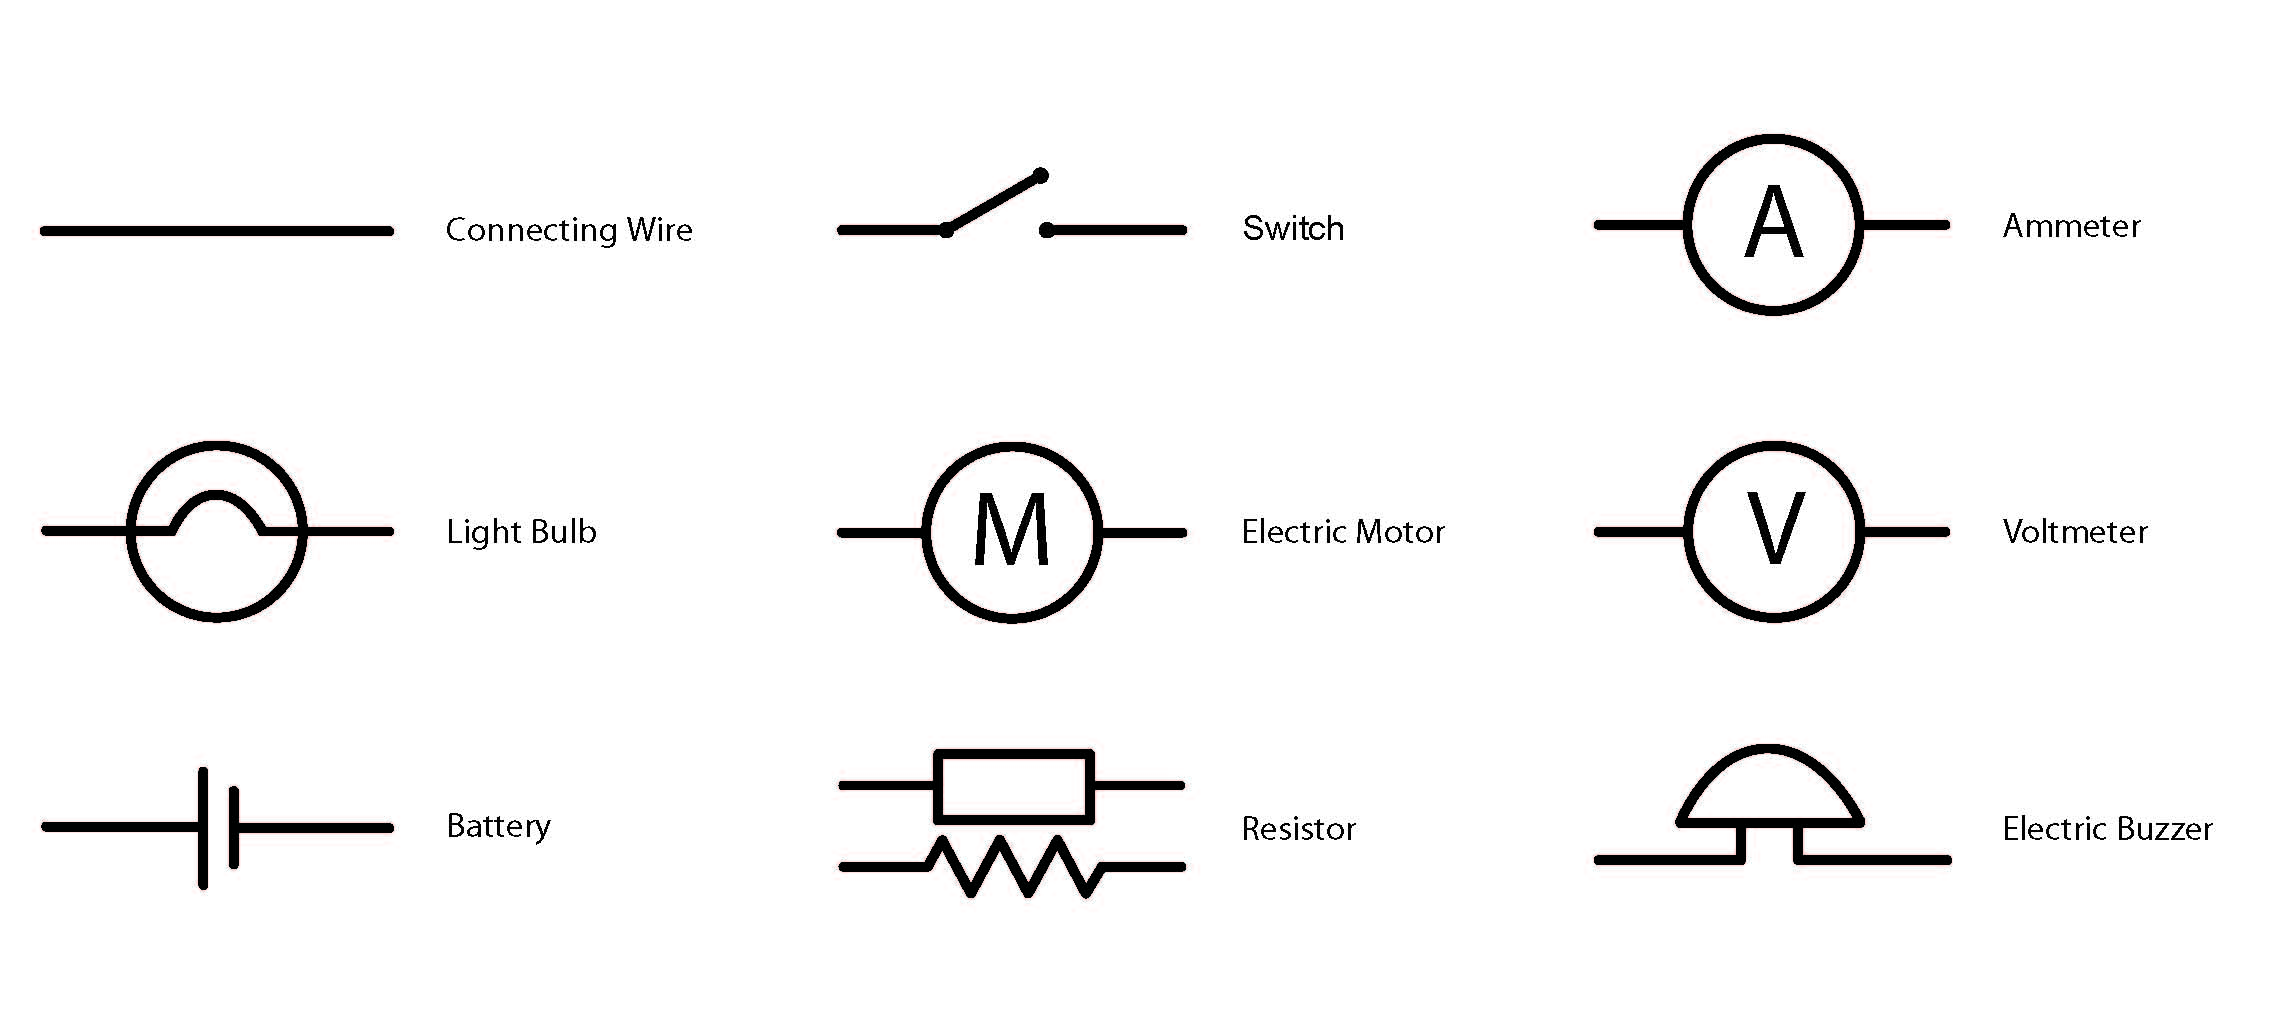 Circuit Symbol Lamp Schematic Symbols Romeolozada001 Showing Post Media For Bulb Symbolsnetcom